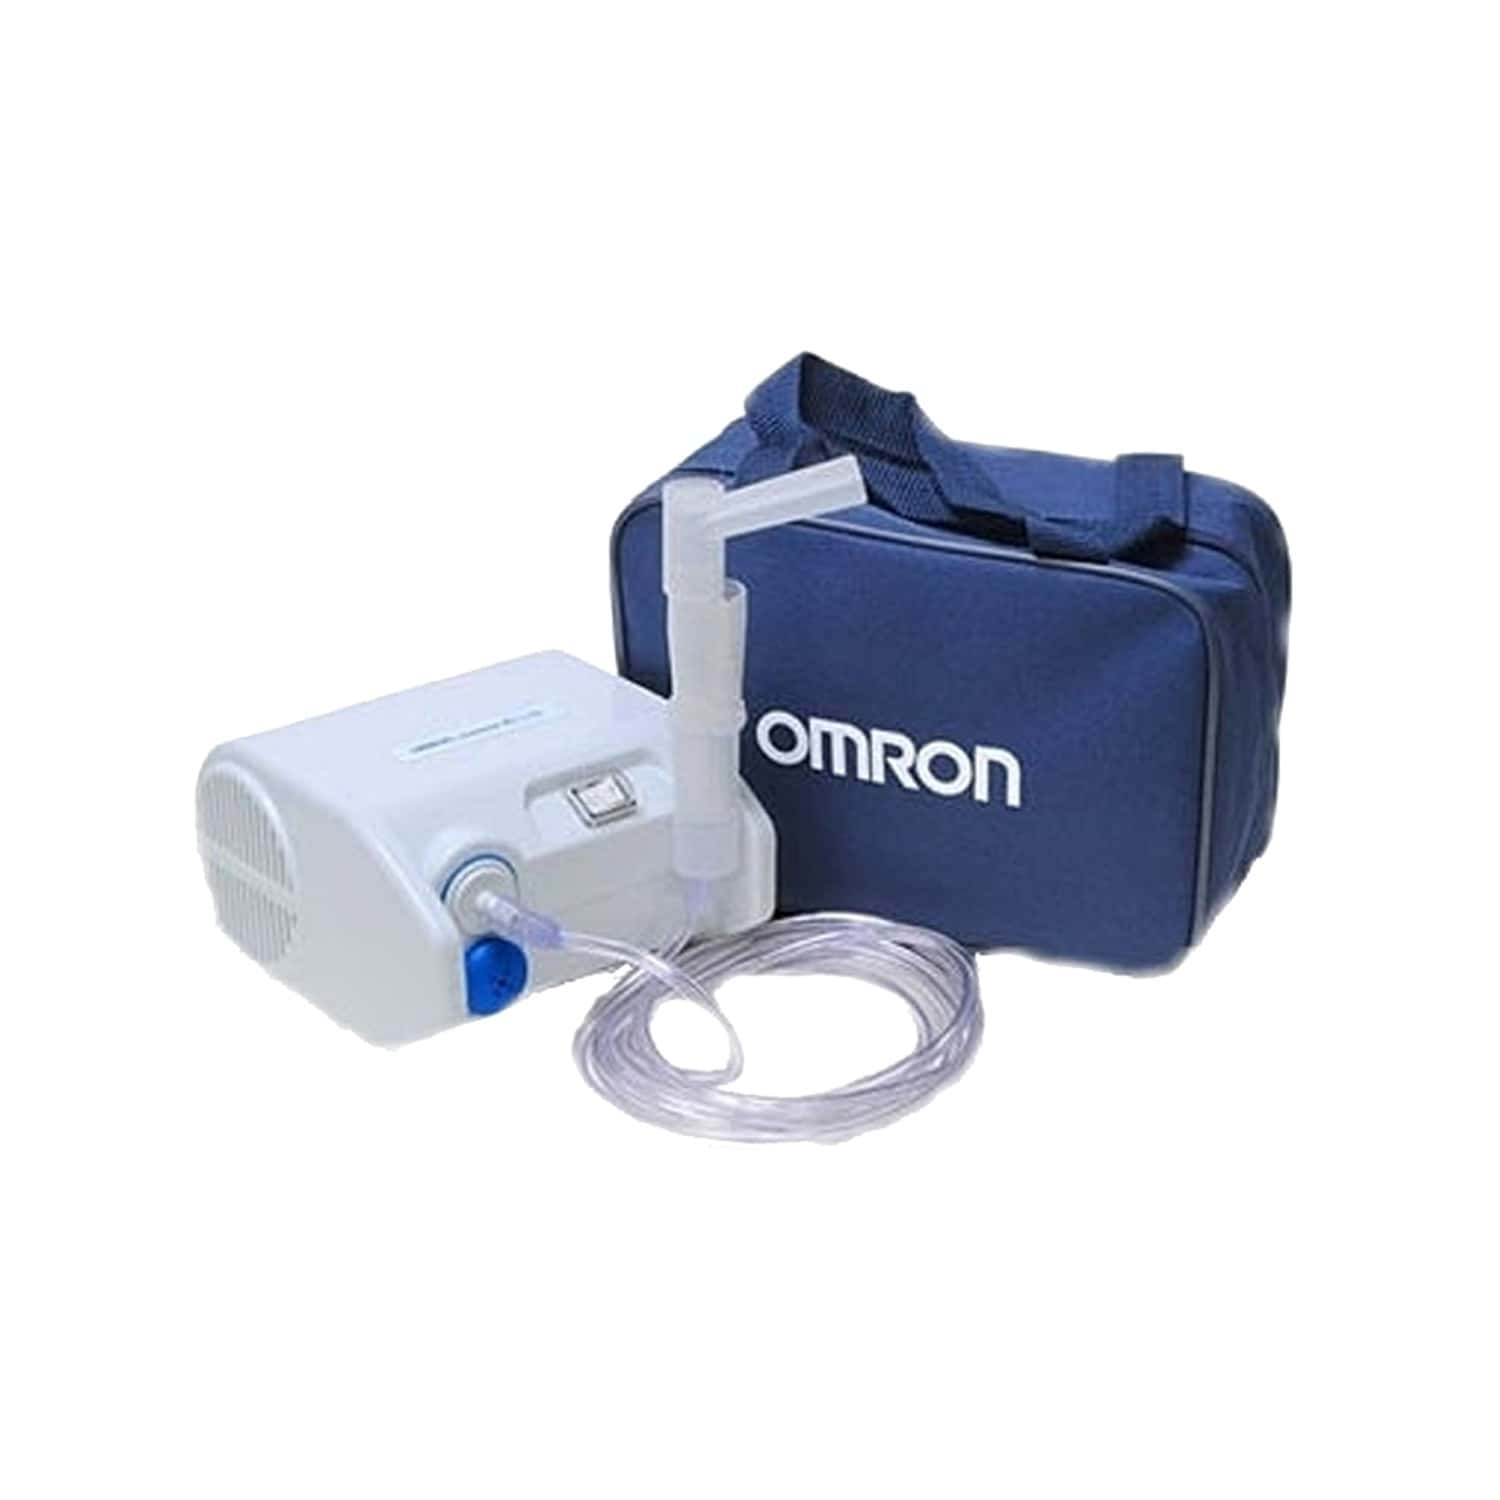 Omron Ne-c25s-in Nebulizer